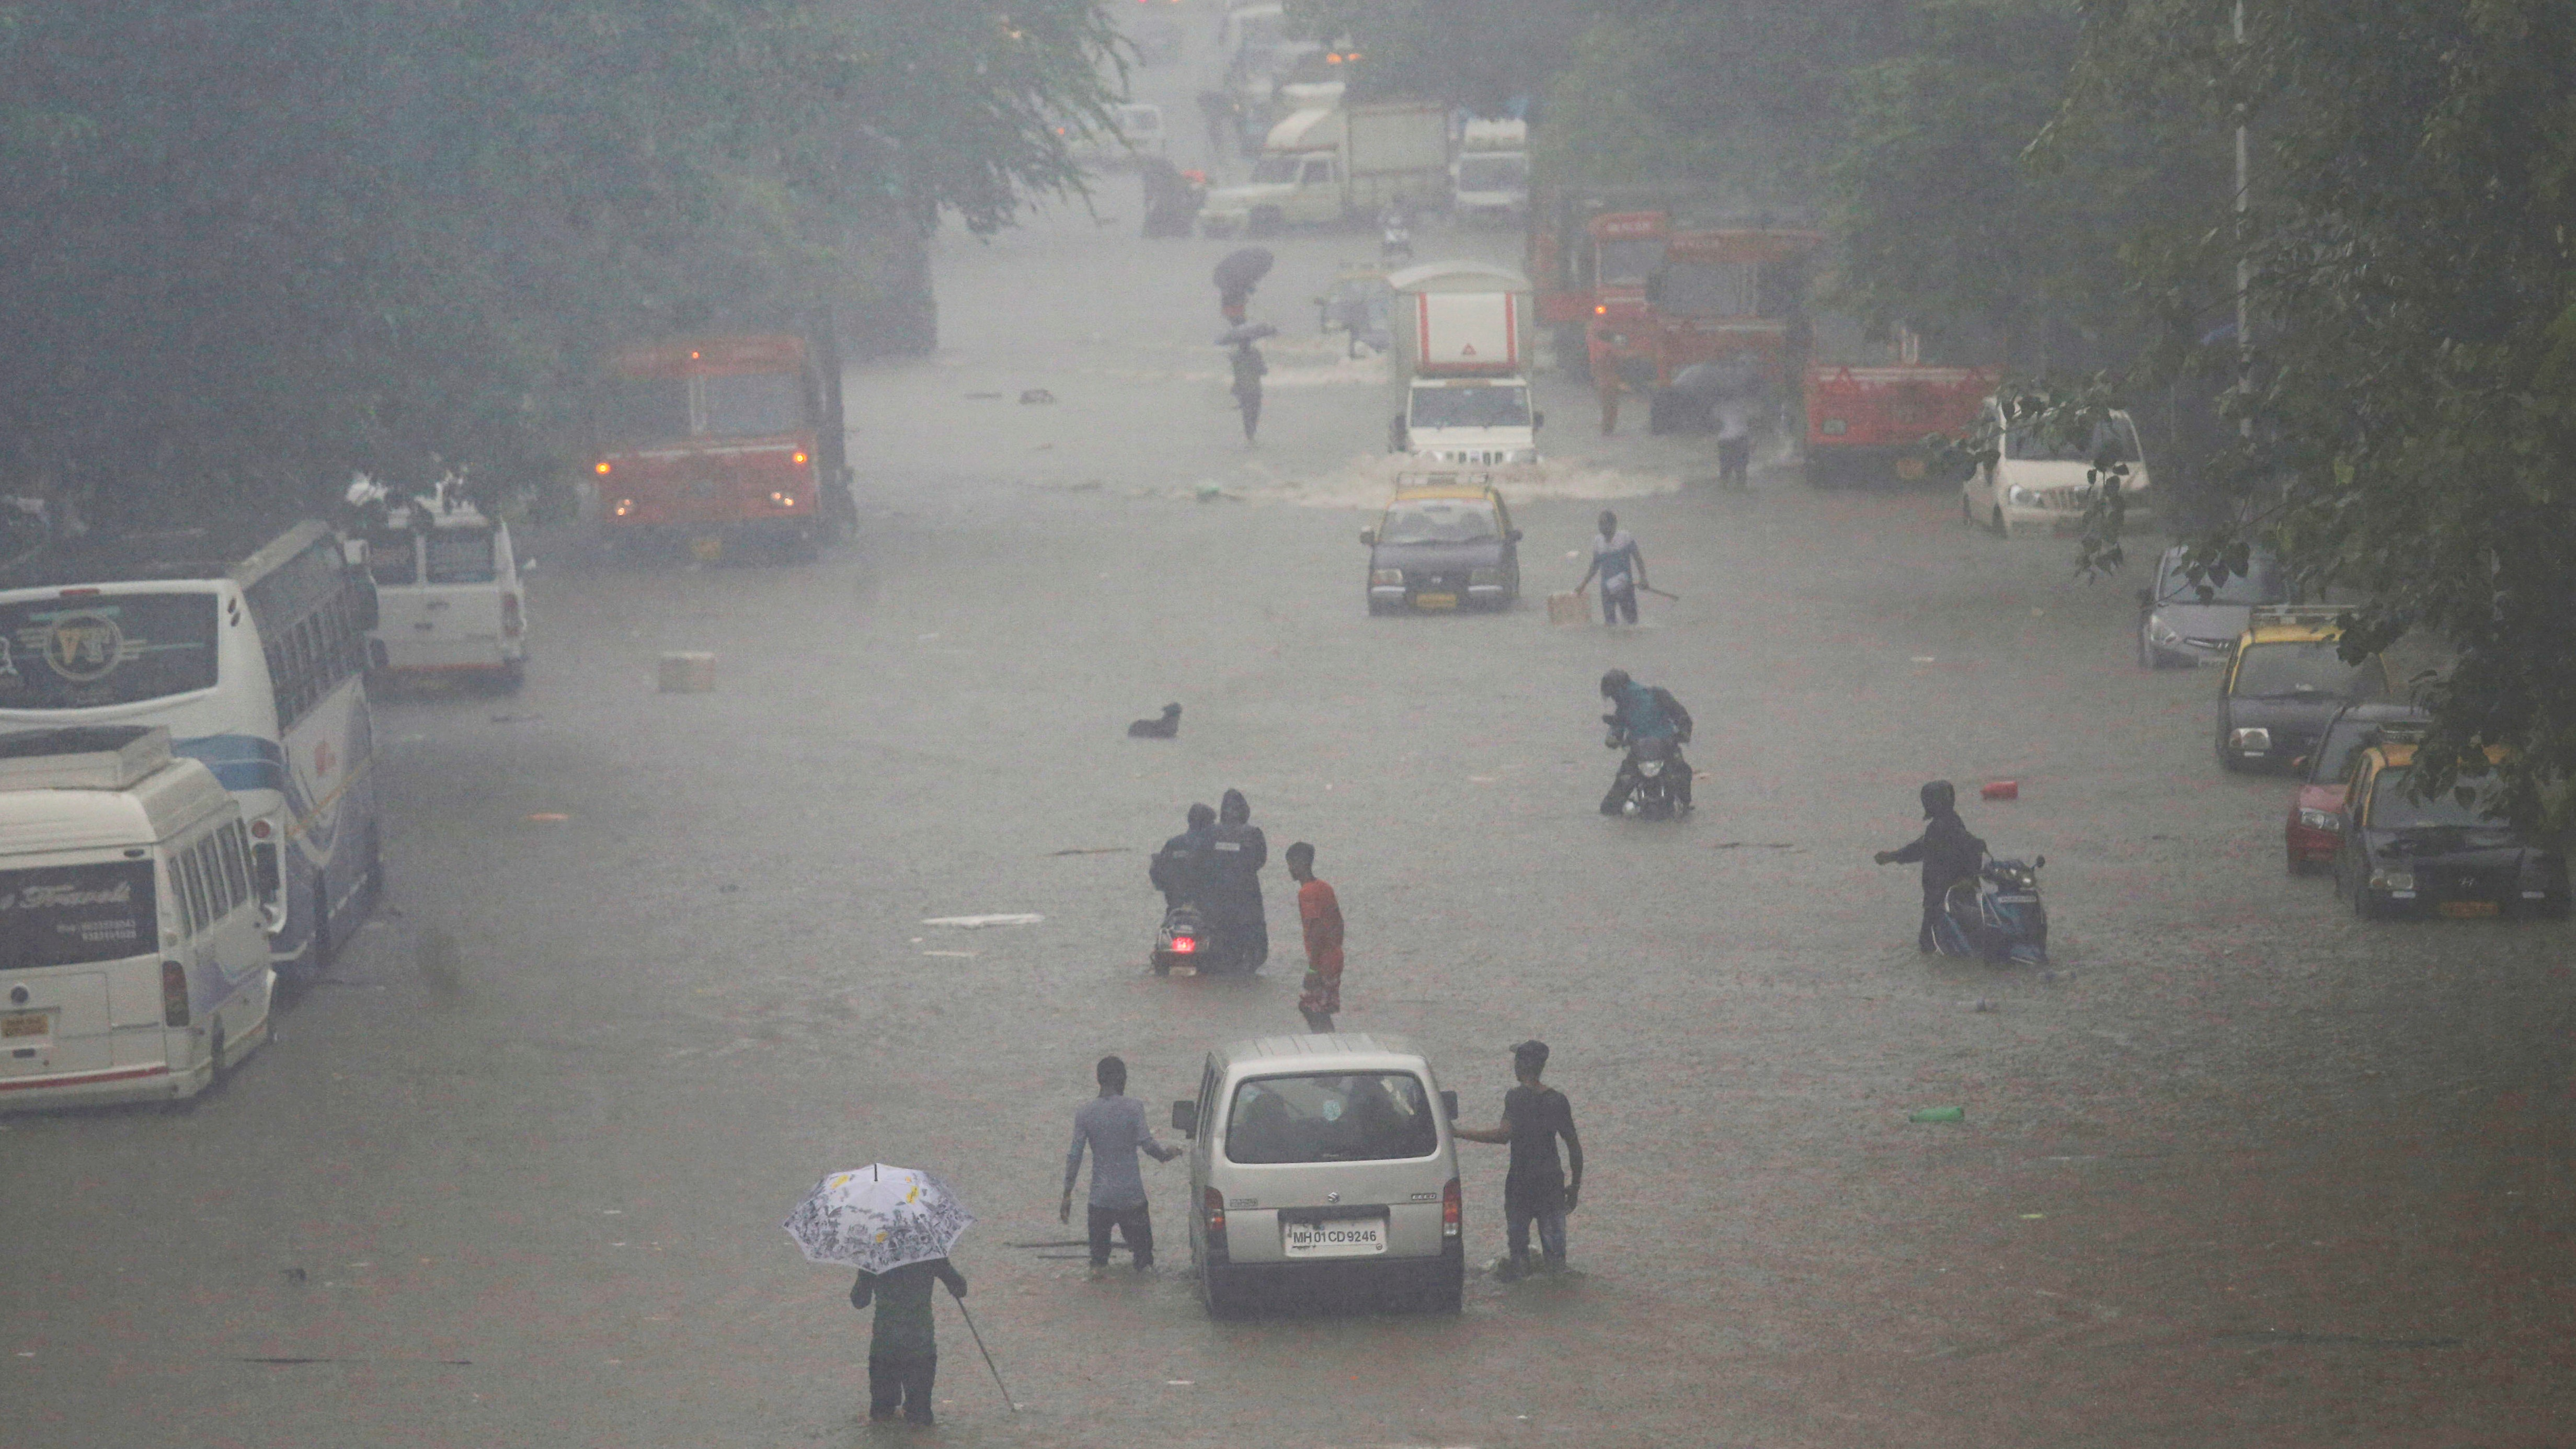 Incredible scenes from India's financial capital that's drowning in rainwater—yet again